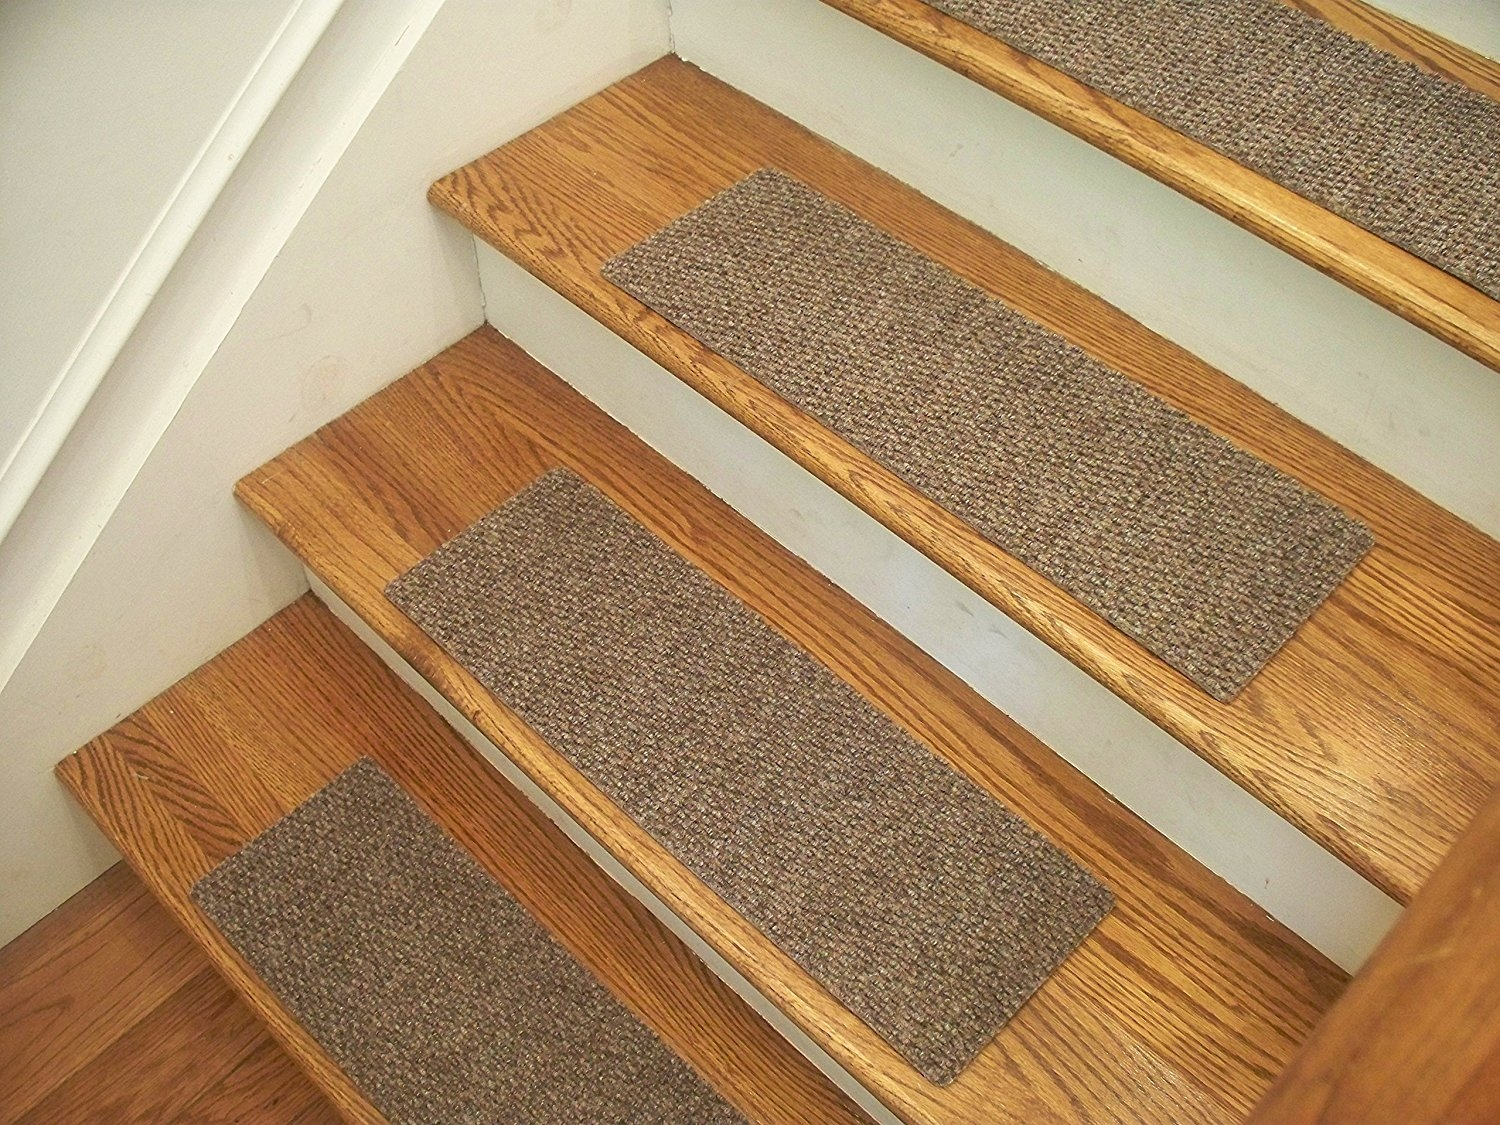 Amazon Essential Carpet Stair Treads Style Berber Color Pertaining To Stair Tread Rug Liners (View 8 of 20)